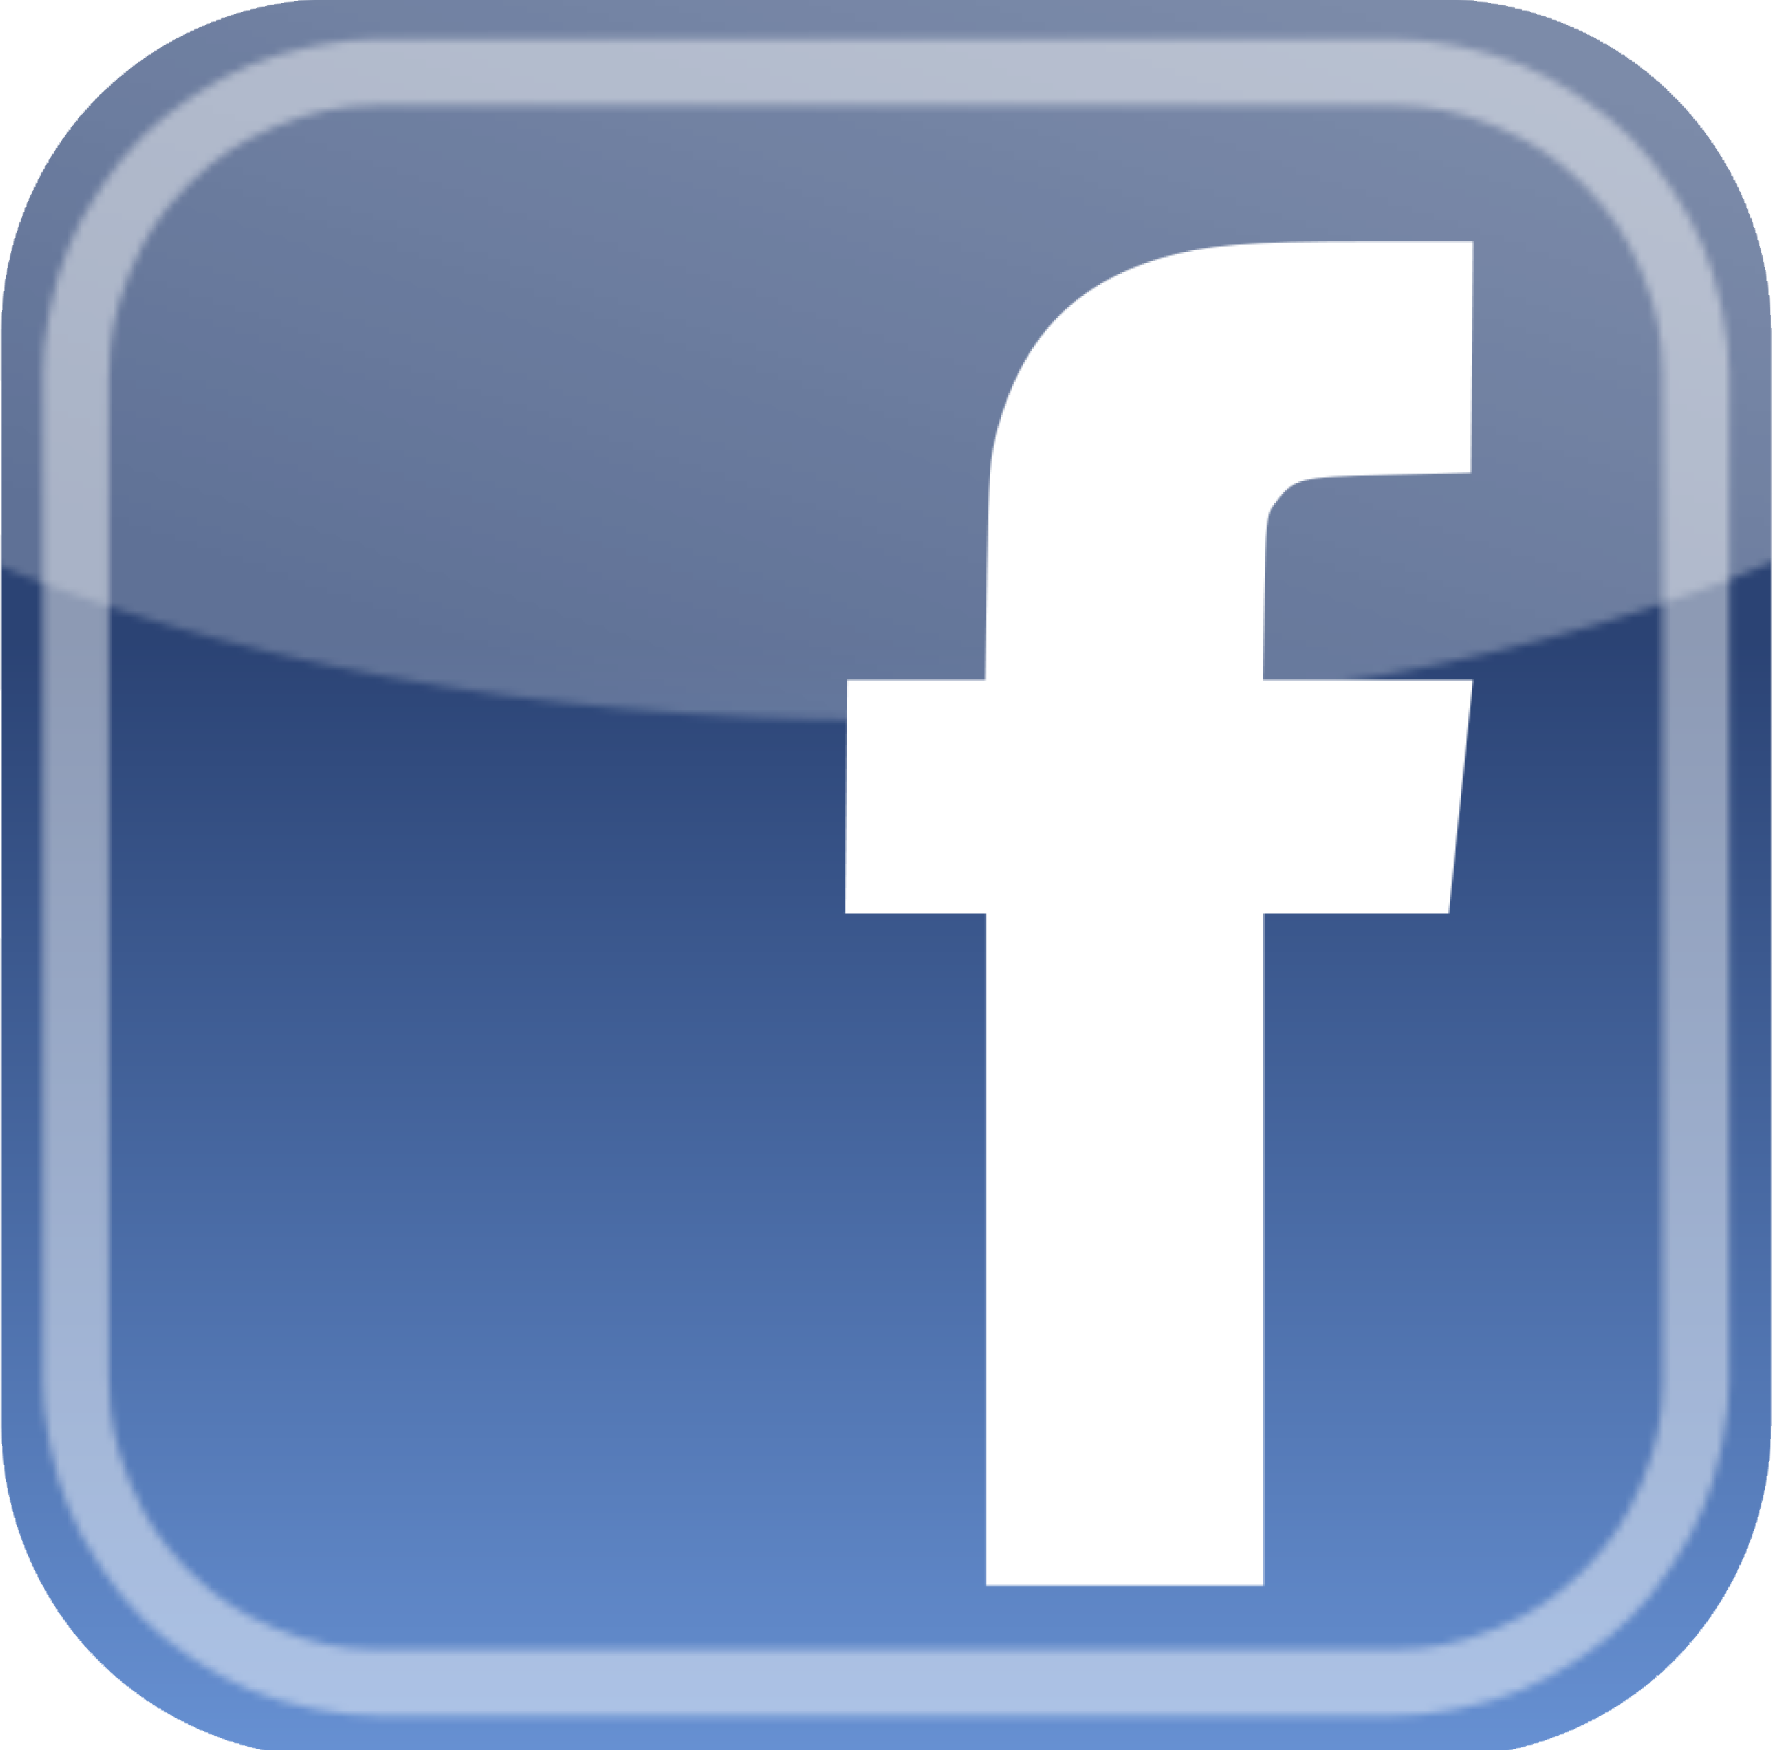 Like Icons Button Computer Facebook Logo PNG Image